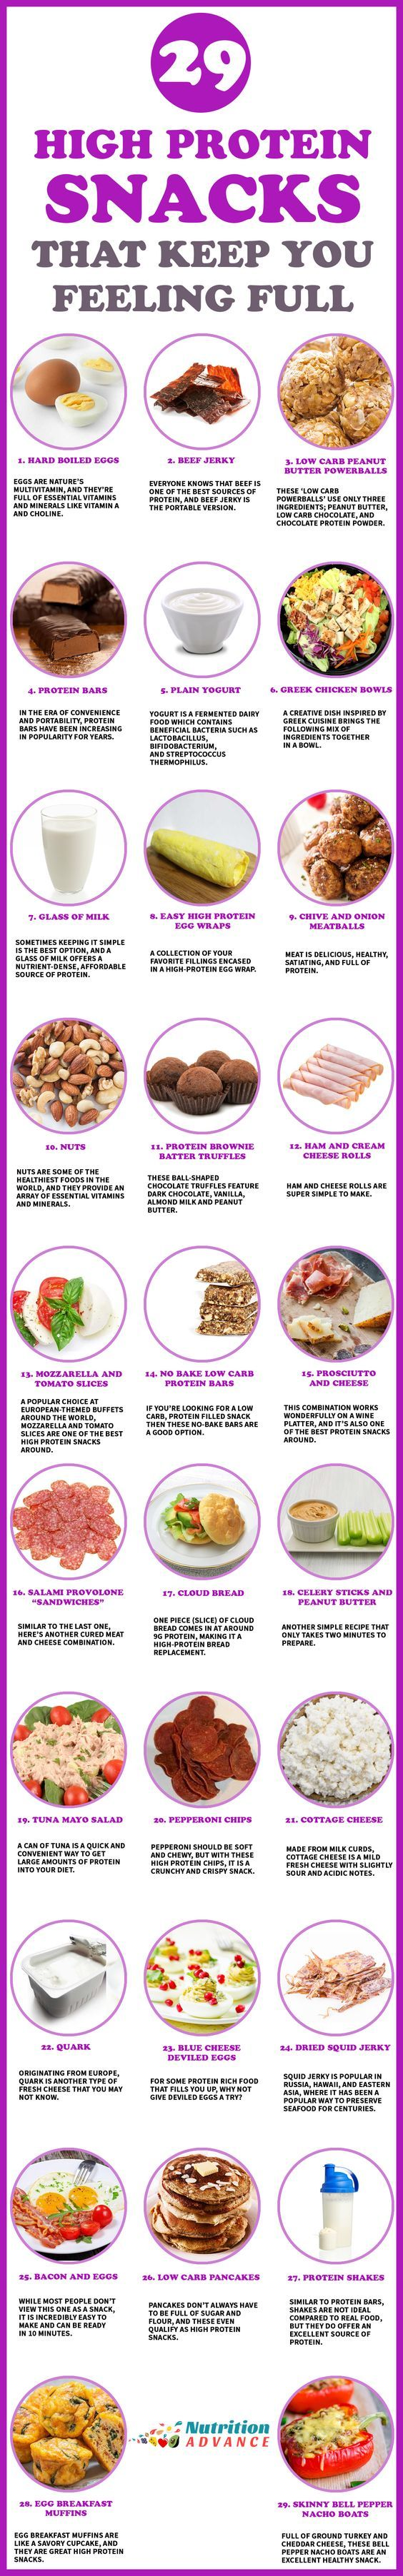 29 High Protein Snacks That Keep You Feeling Full | Here are some healthy and tasty snacks that are full of protein. All of them are suitable for low carb diets, and most are great for keto and paleo too! | See the full article at: http://nutritionadvance.com/high-protein-snacks/ | via @nutradvance